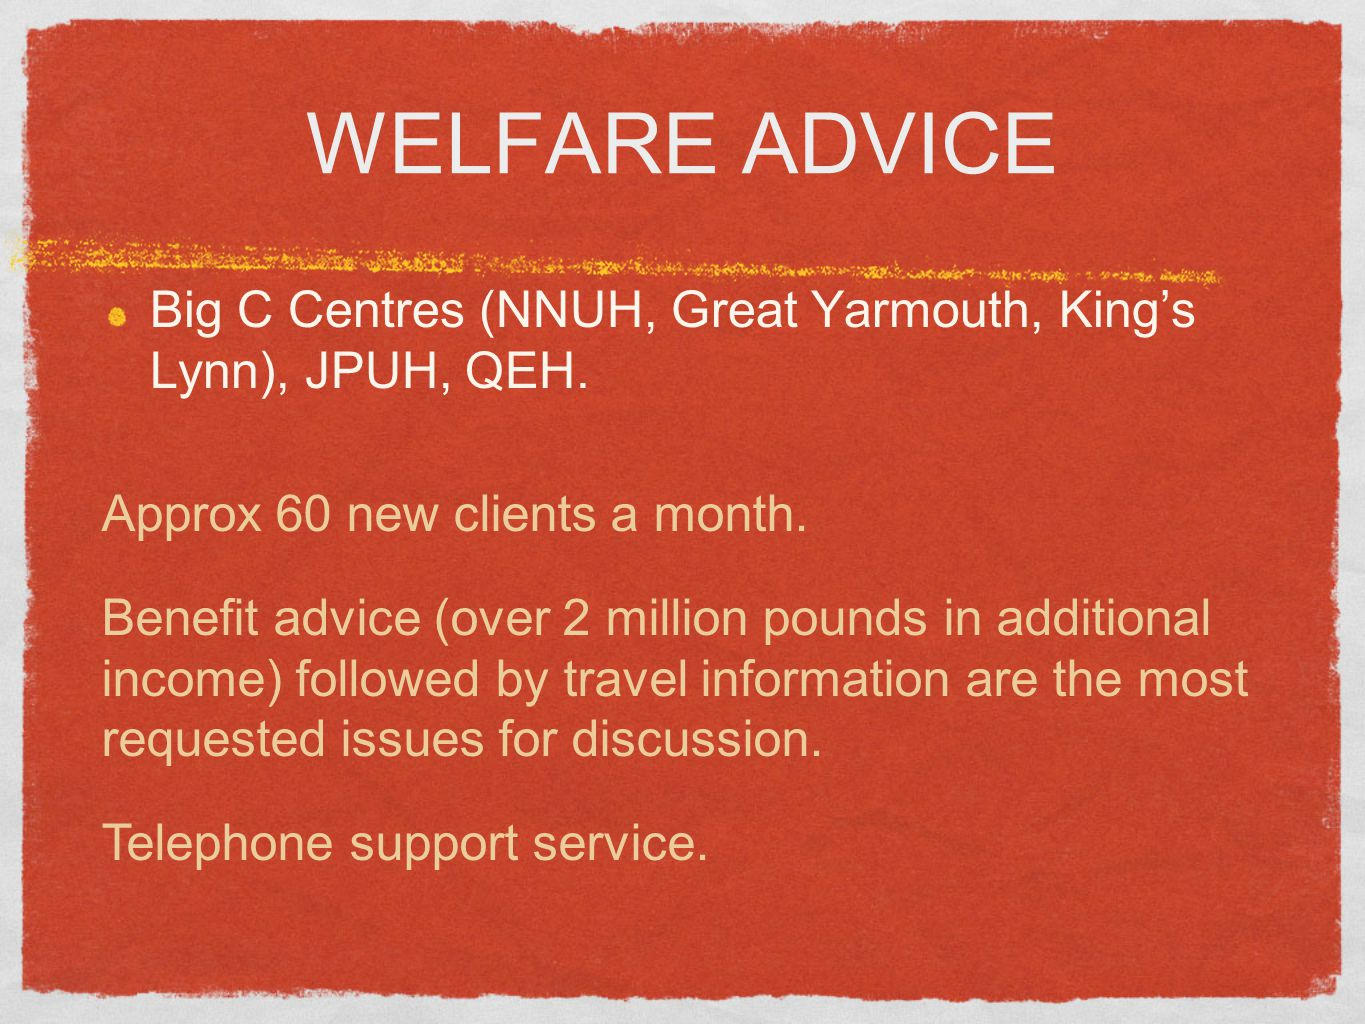 WELFARE ADVICE Big C Centres (NNUH, Great Yarmouth, King's Lynn), JPUH, QEH. Approx 60 new clients a month. Benefit advice (over 2 million pounds in a